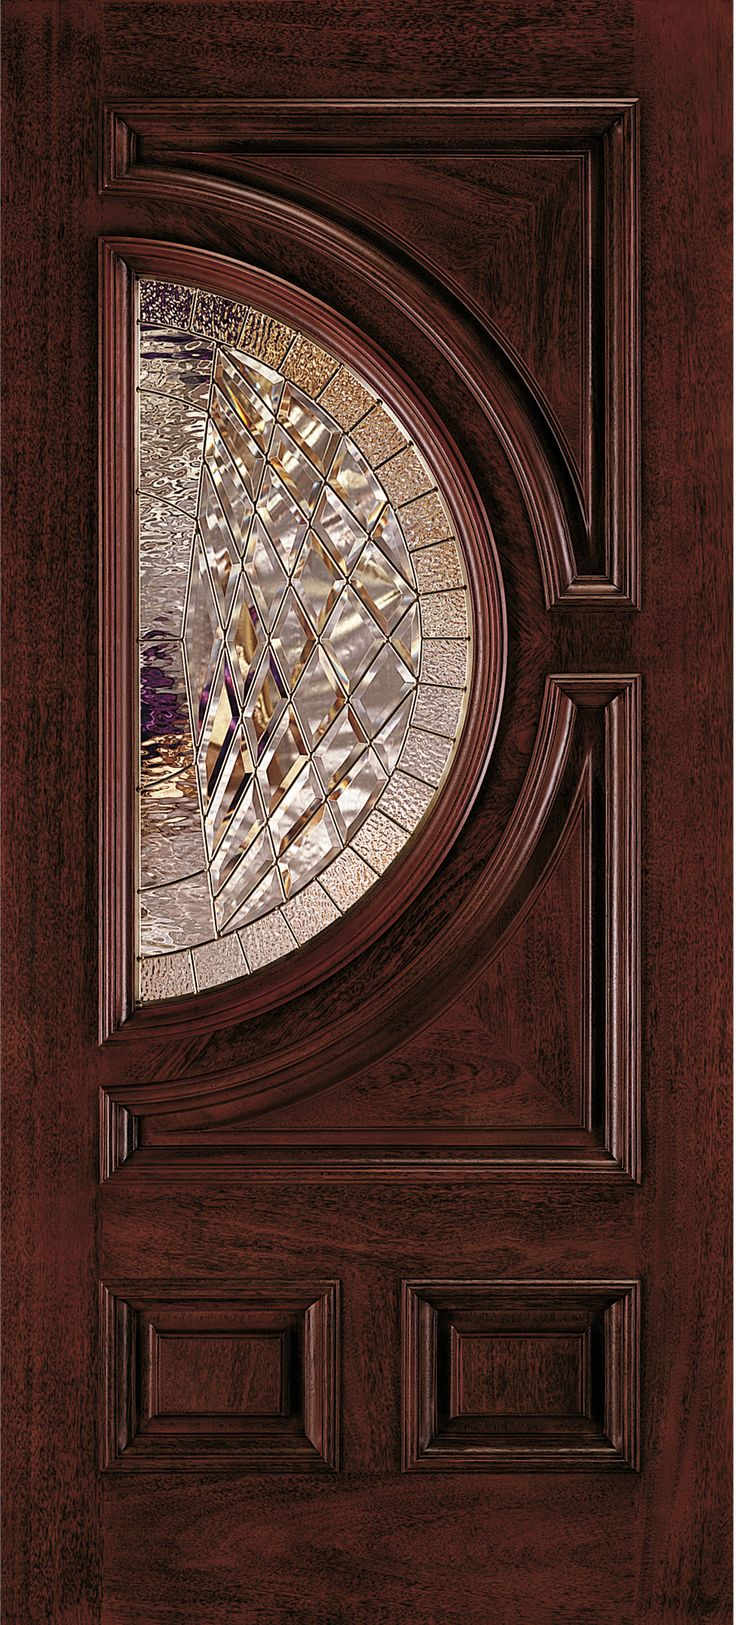 Best 25 Wooden Doors Ideas On Pinterest Wooden Door Design Wooden Interior Doors And Main